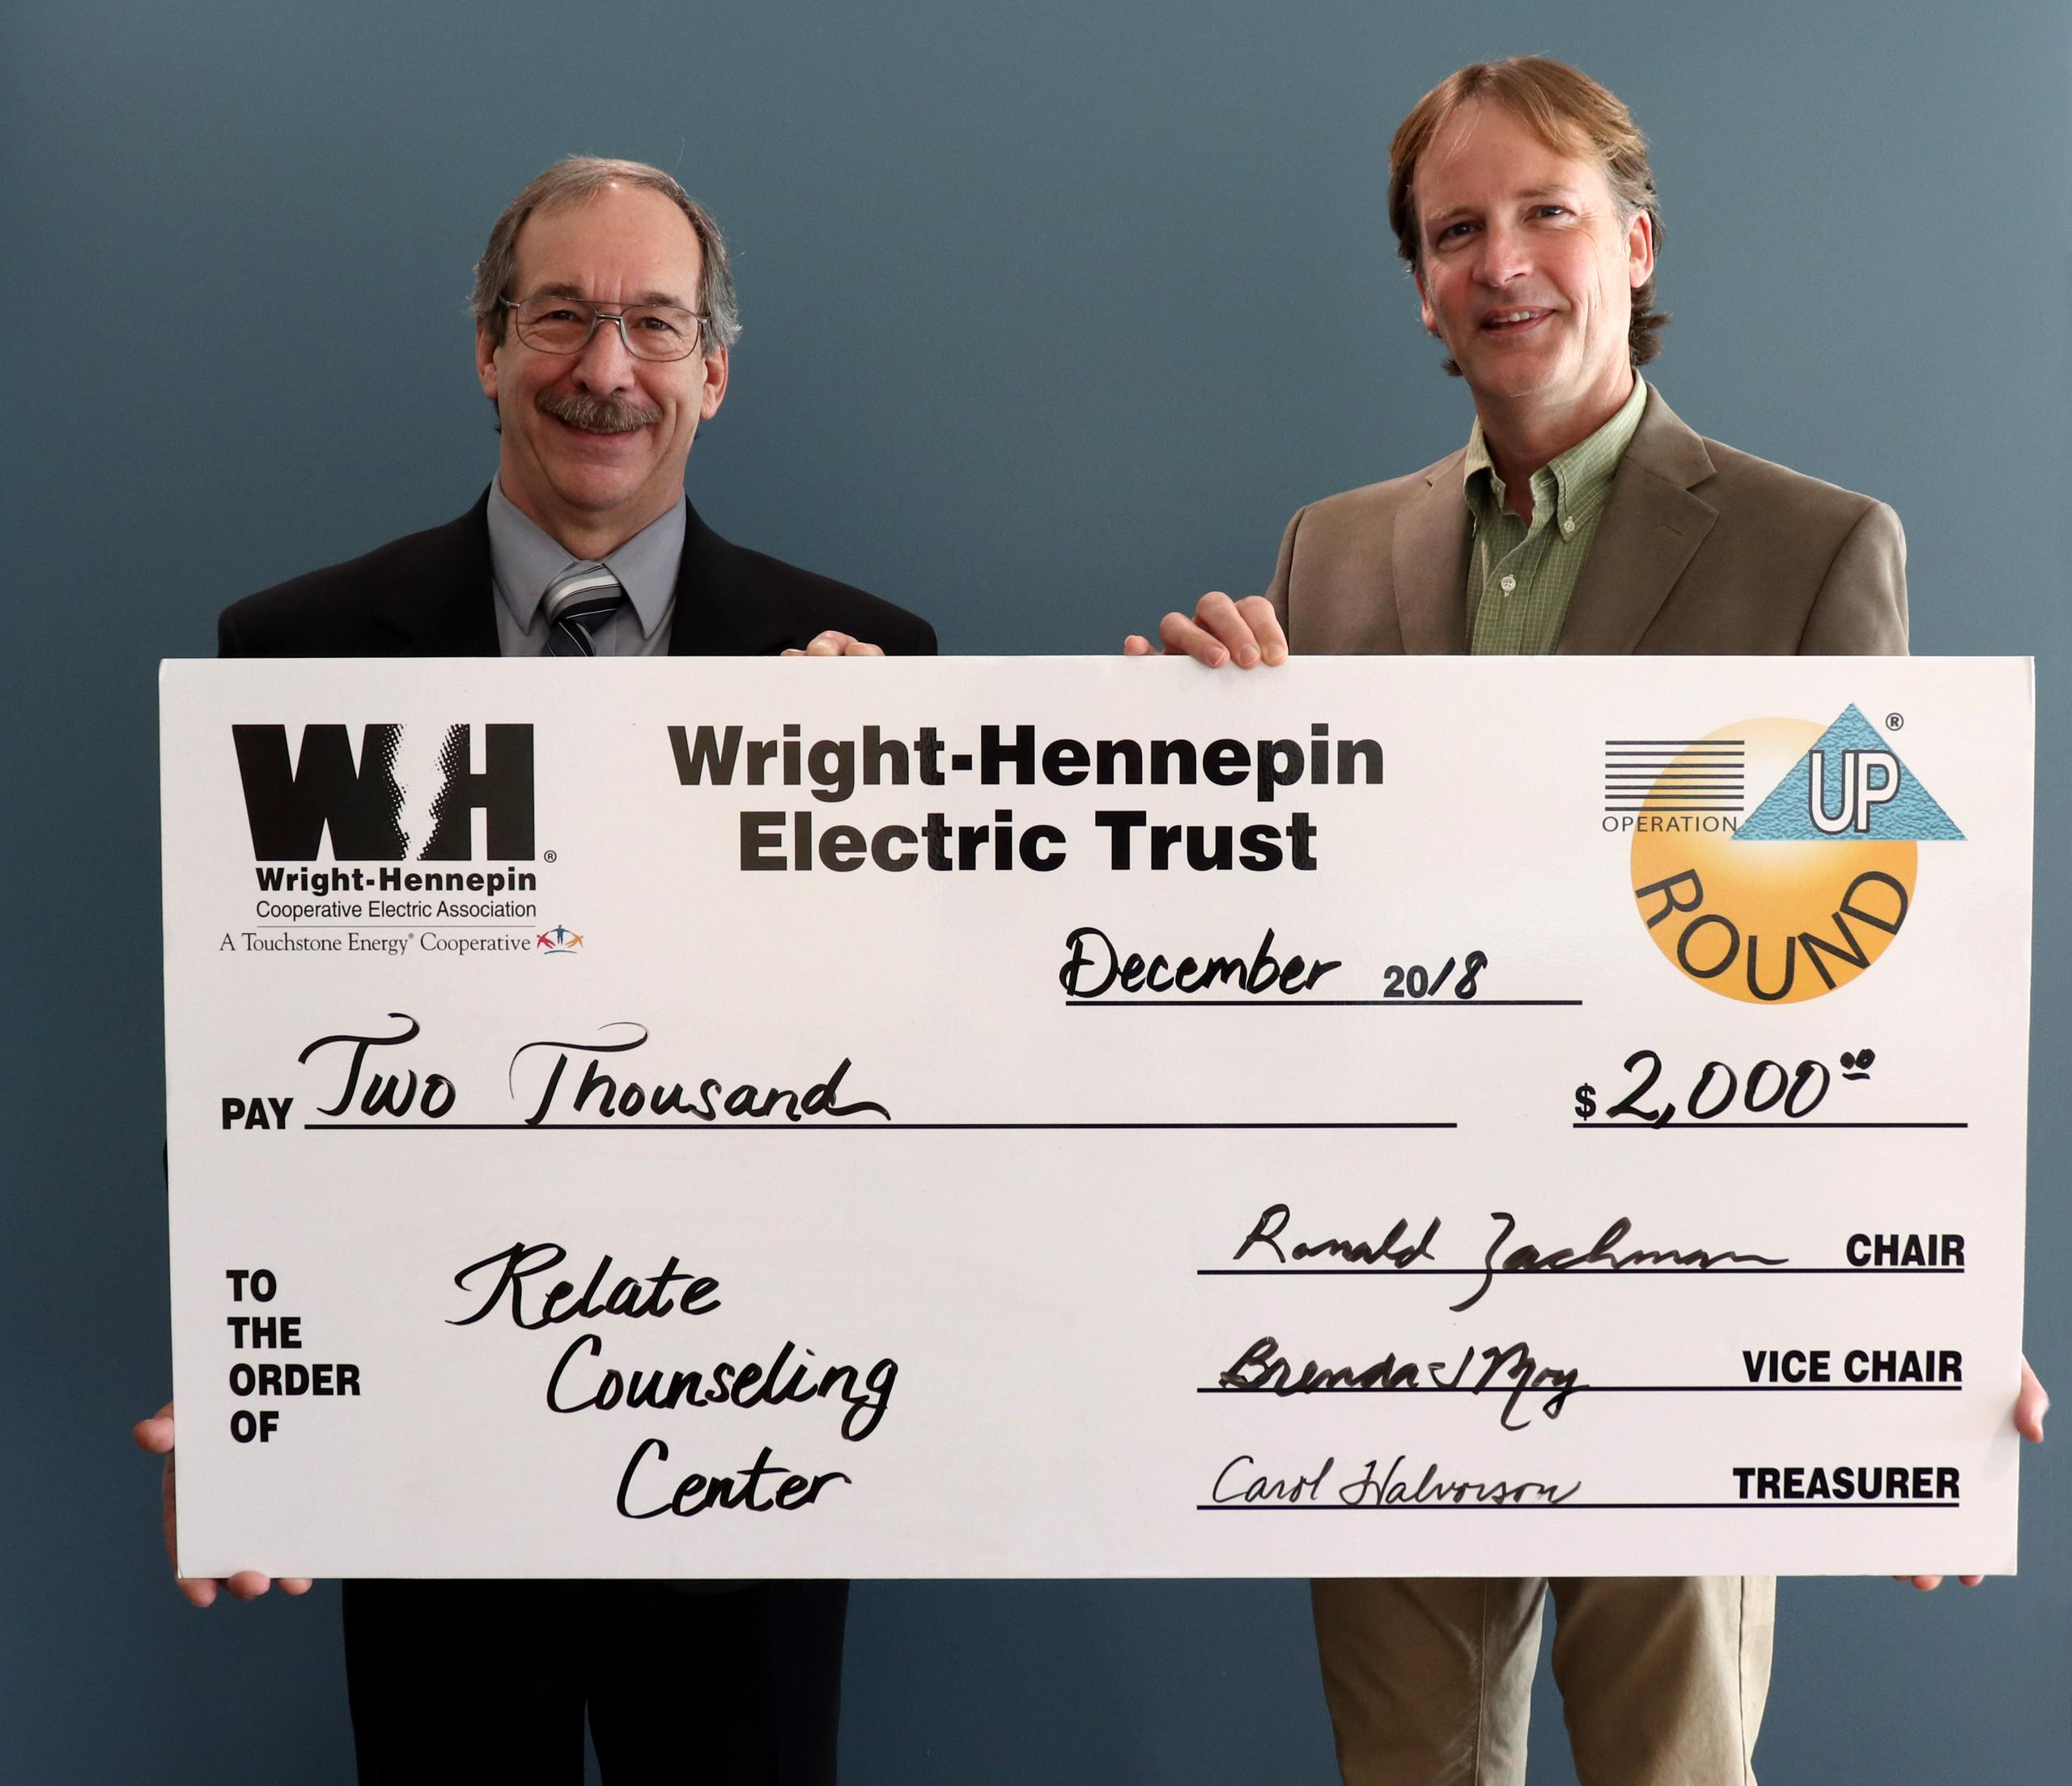 Two people hold up check given to them by Wright-Hennepin Electric